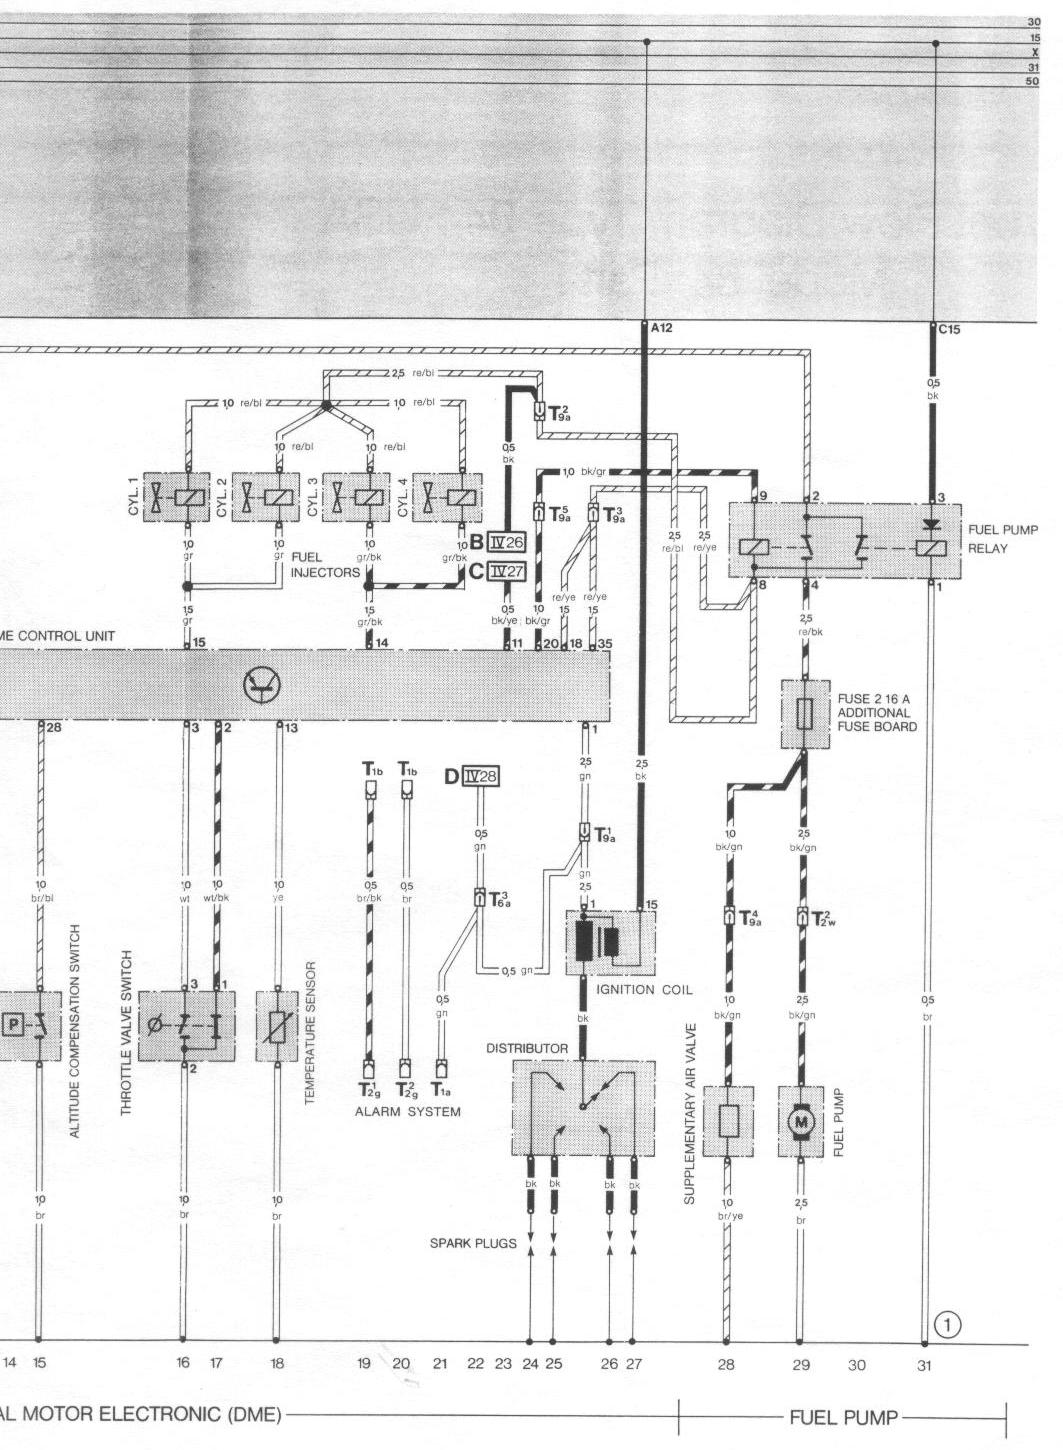 944_84_1_2 pelican parts porsche 924 944 electrical diagrams 1987 porsche 944 wiring diagram at creativeand.co